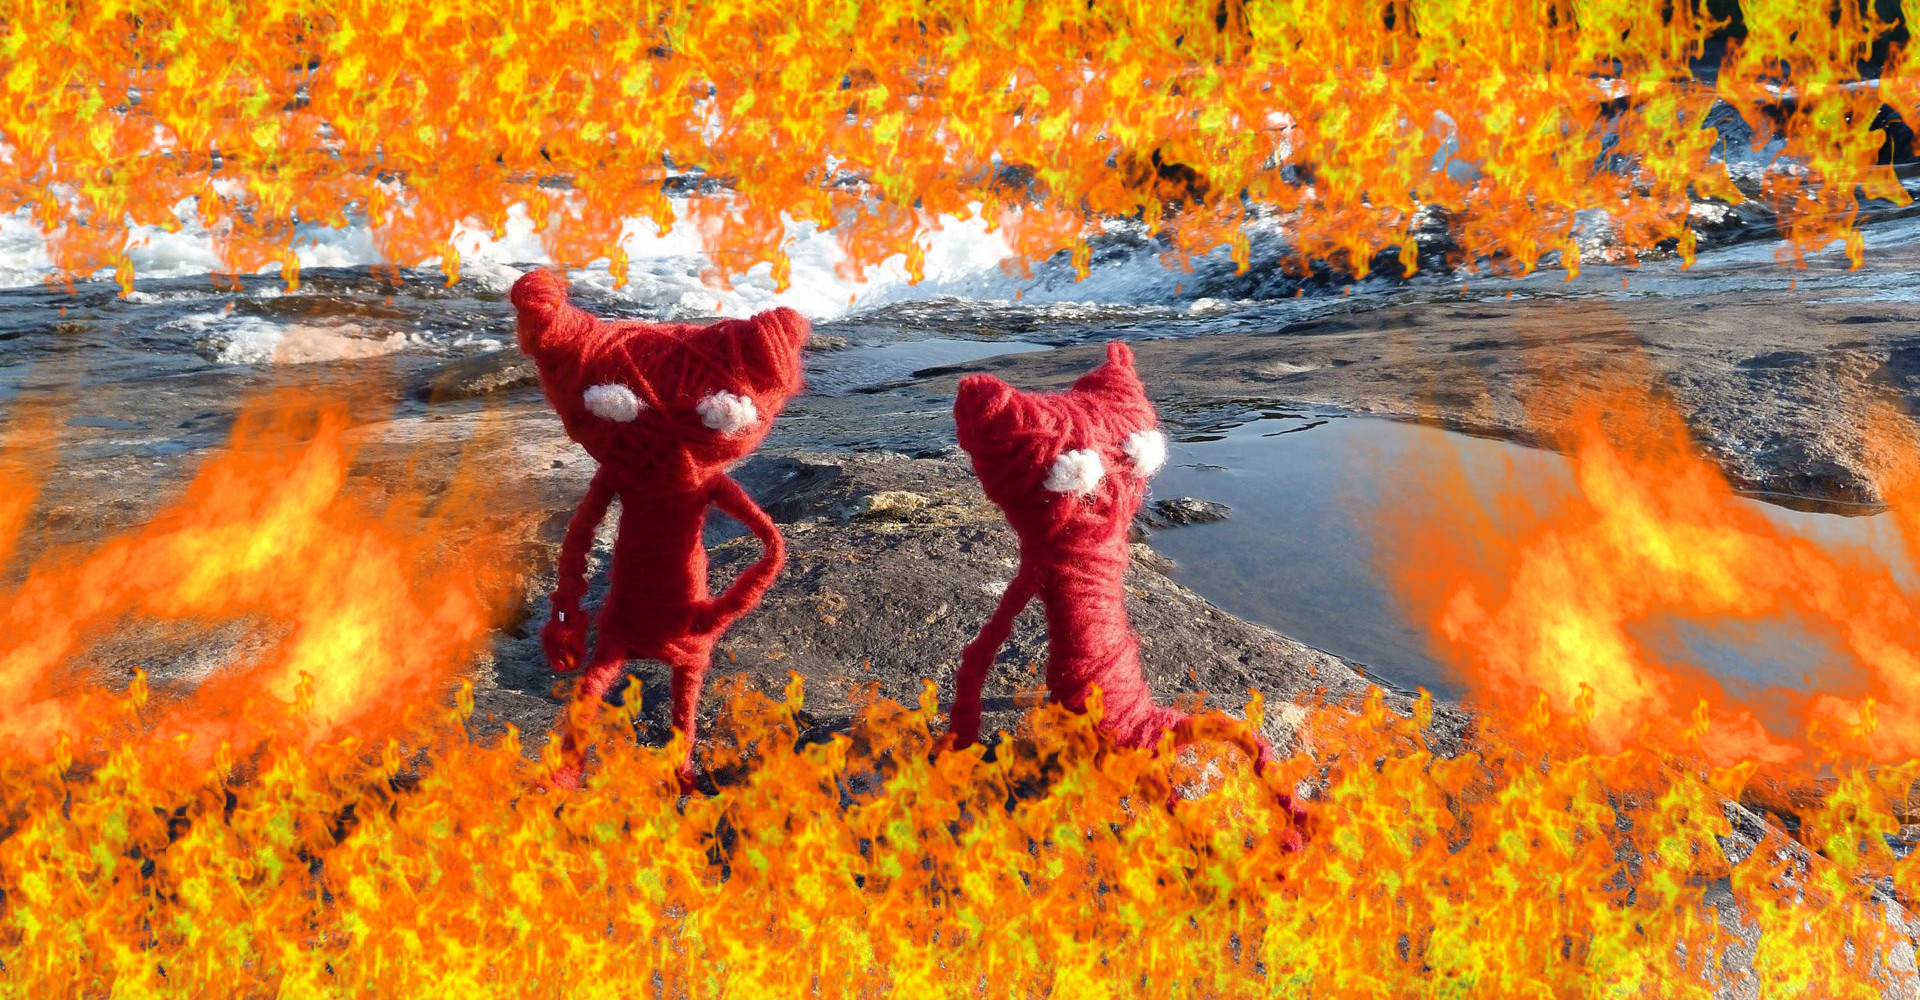 yarny_feature